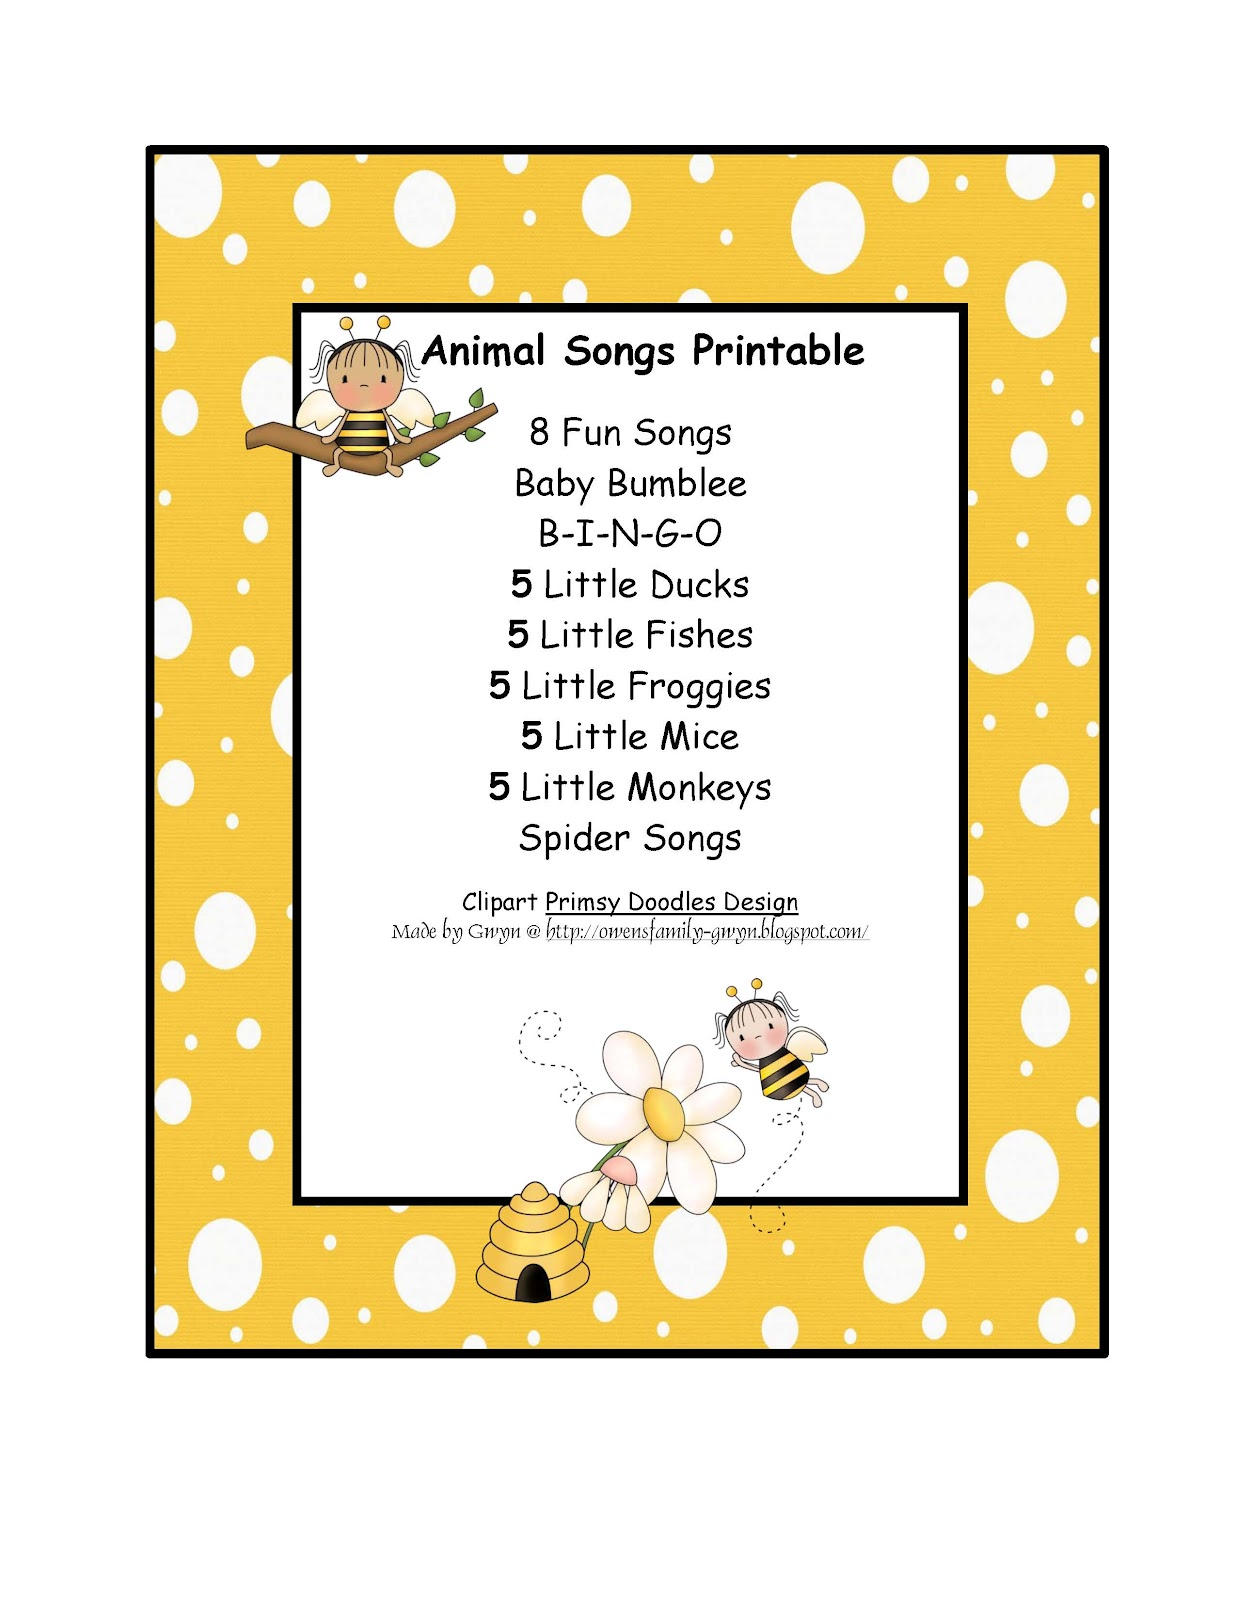 Preschool Printables July 2012